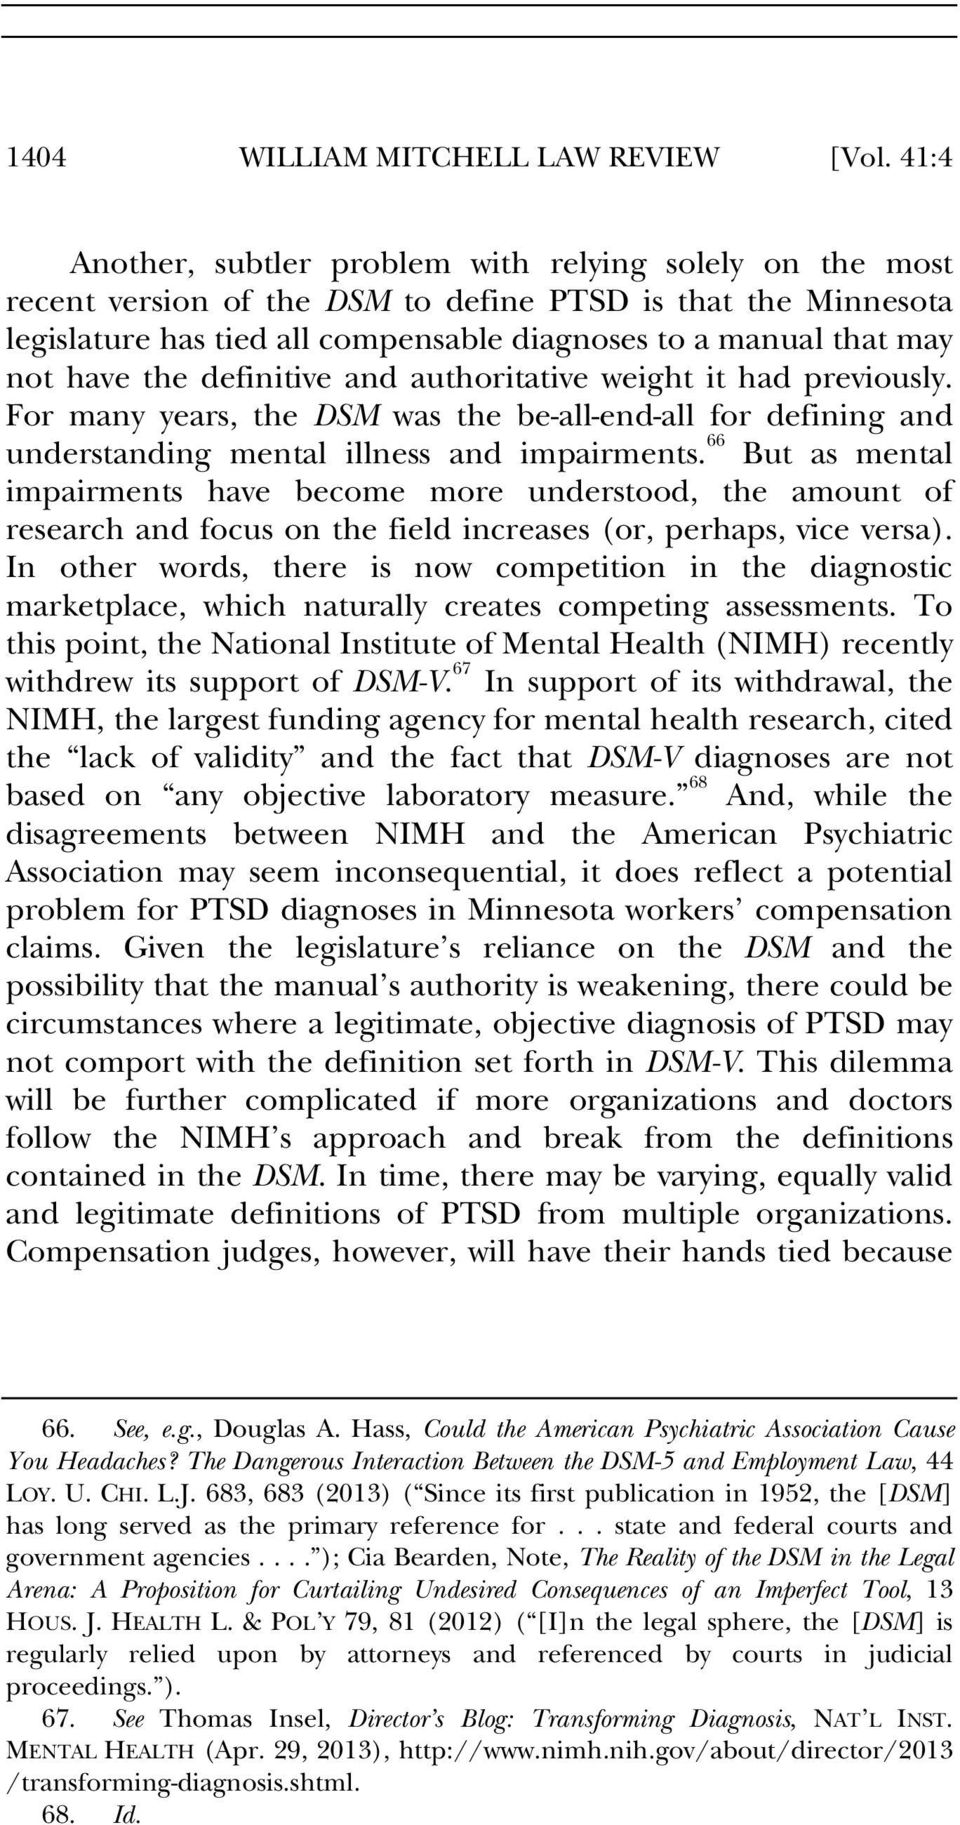 have the definitive and authoritative weight it had previously. For many years, the DSM was the be-all-end-all for defining and understanding mental illness and impairments.